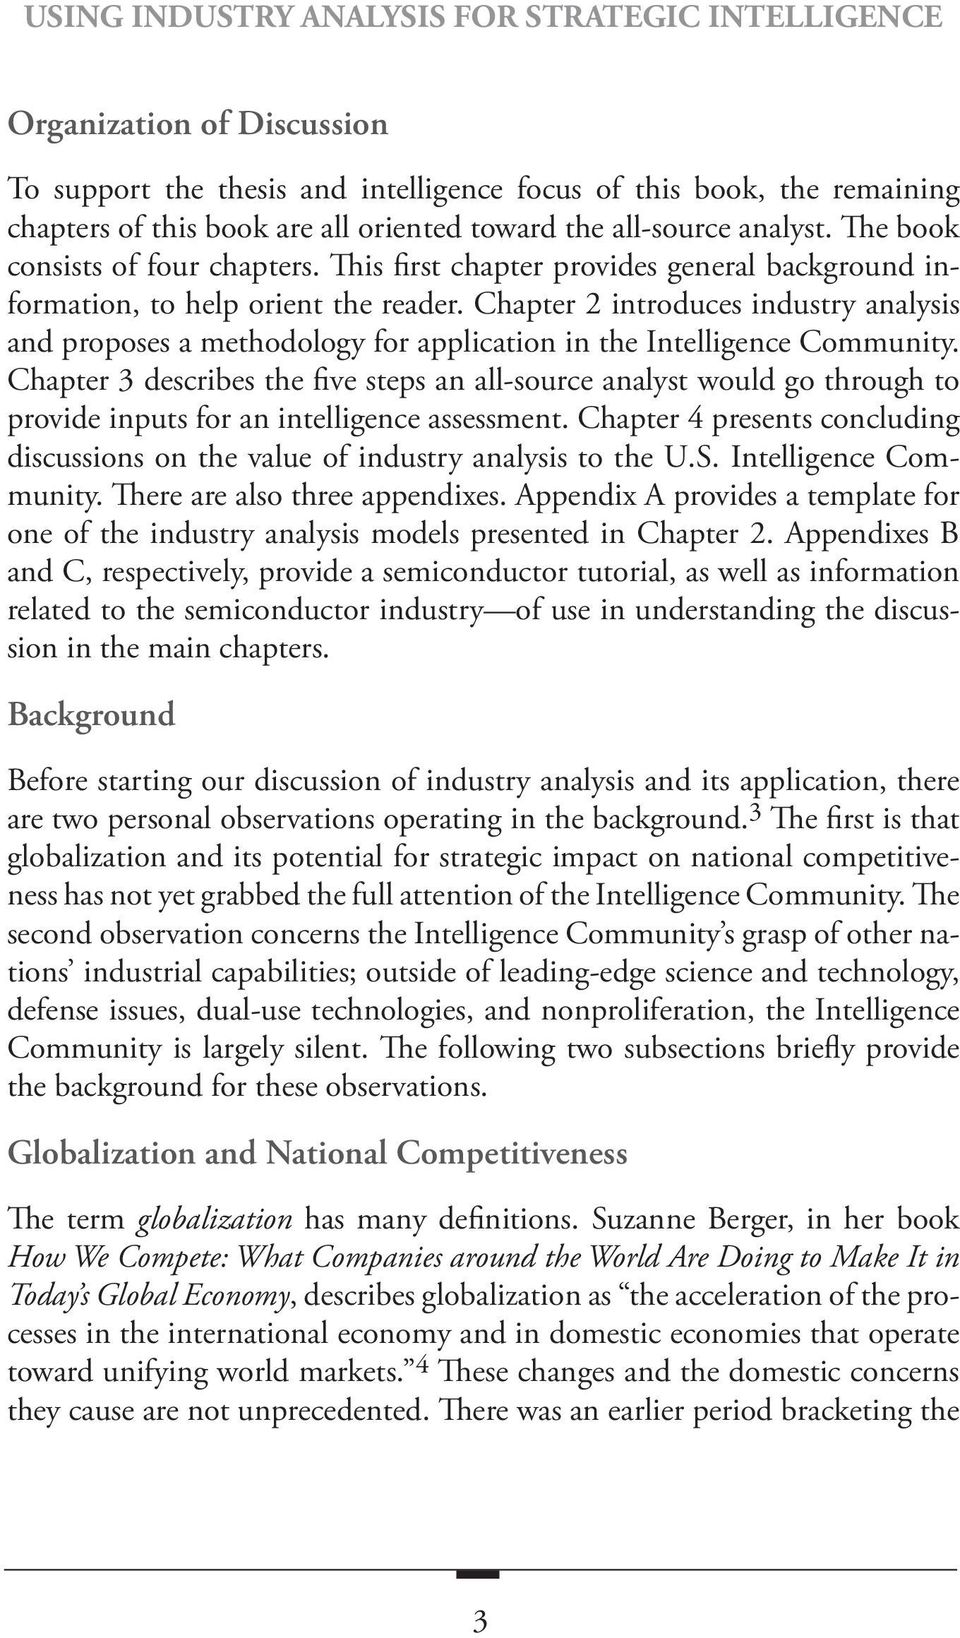 Chapter 2 introduces industry analysis and proposes a methodology for application in the Intelligence Community.